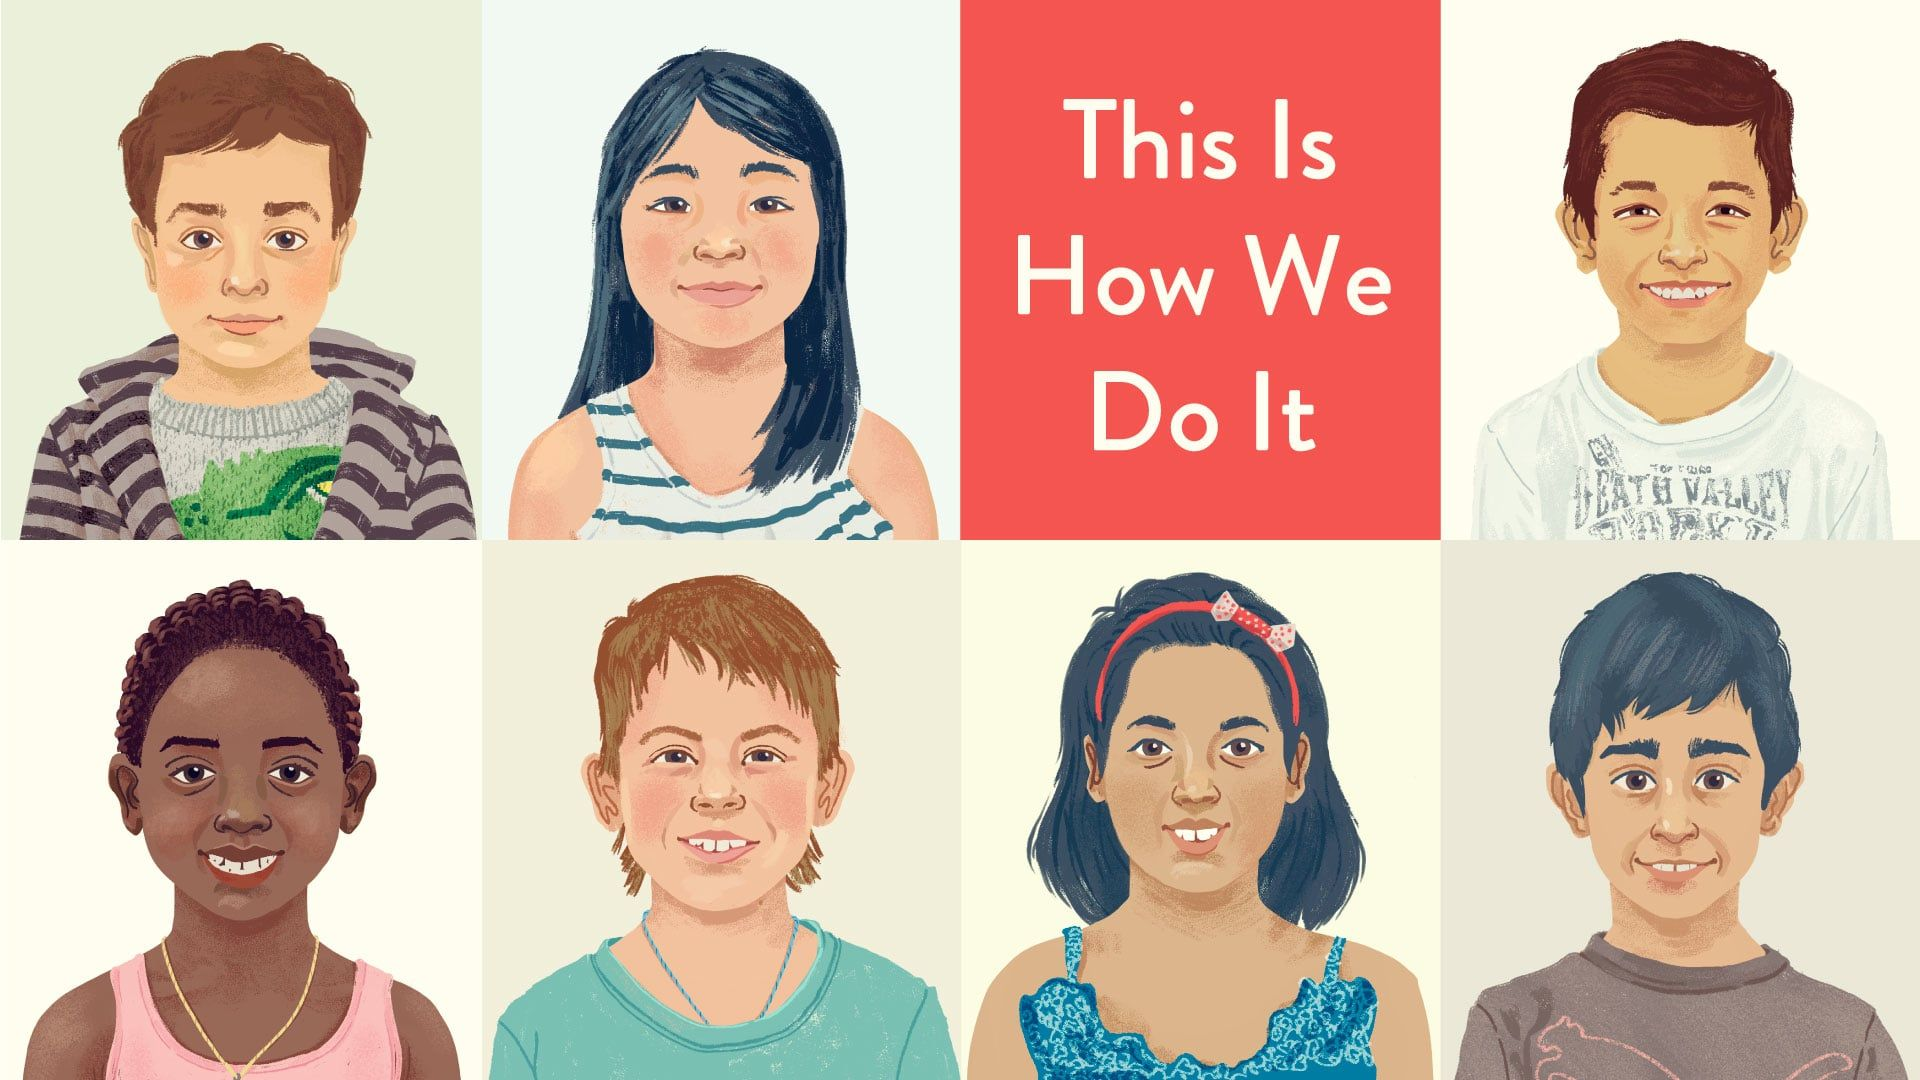 Book trailer for this is how we do it by matt lamothe